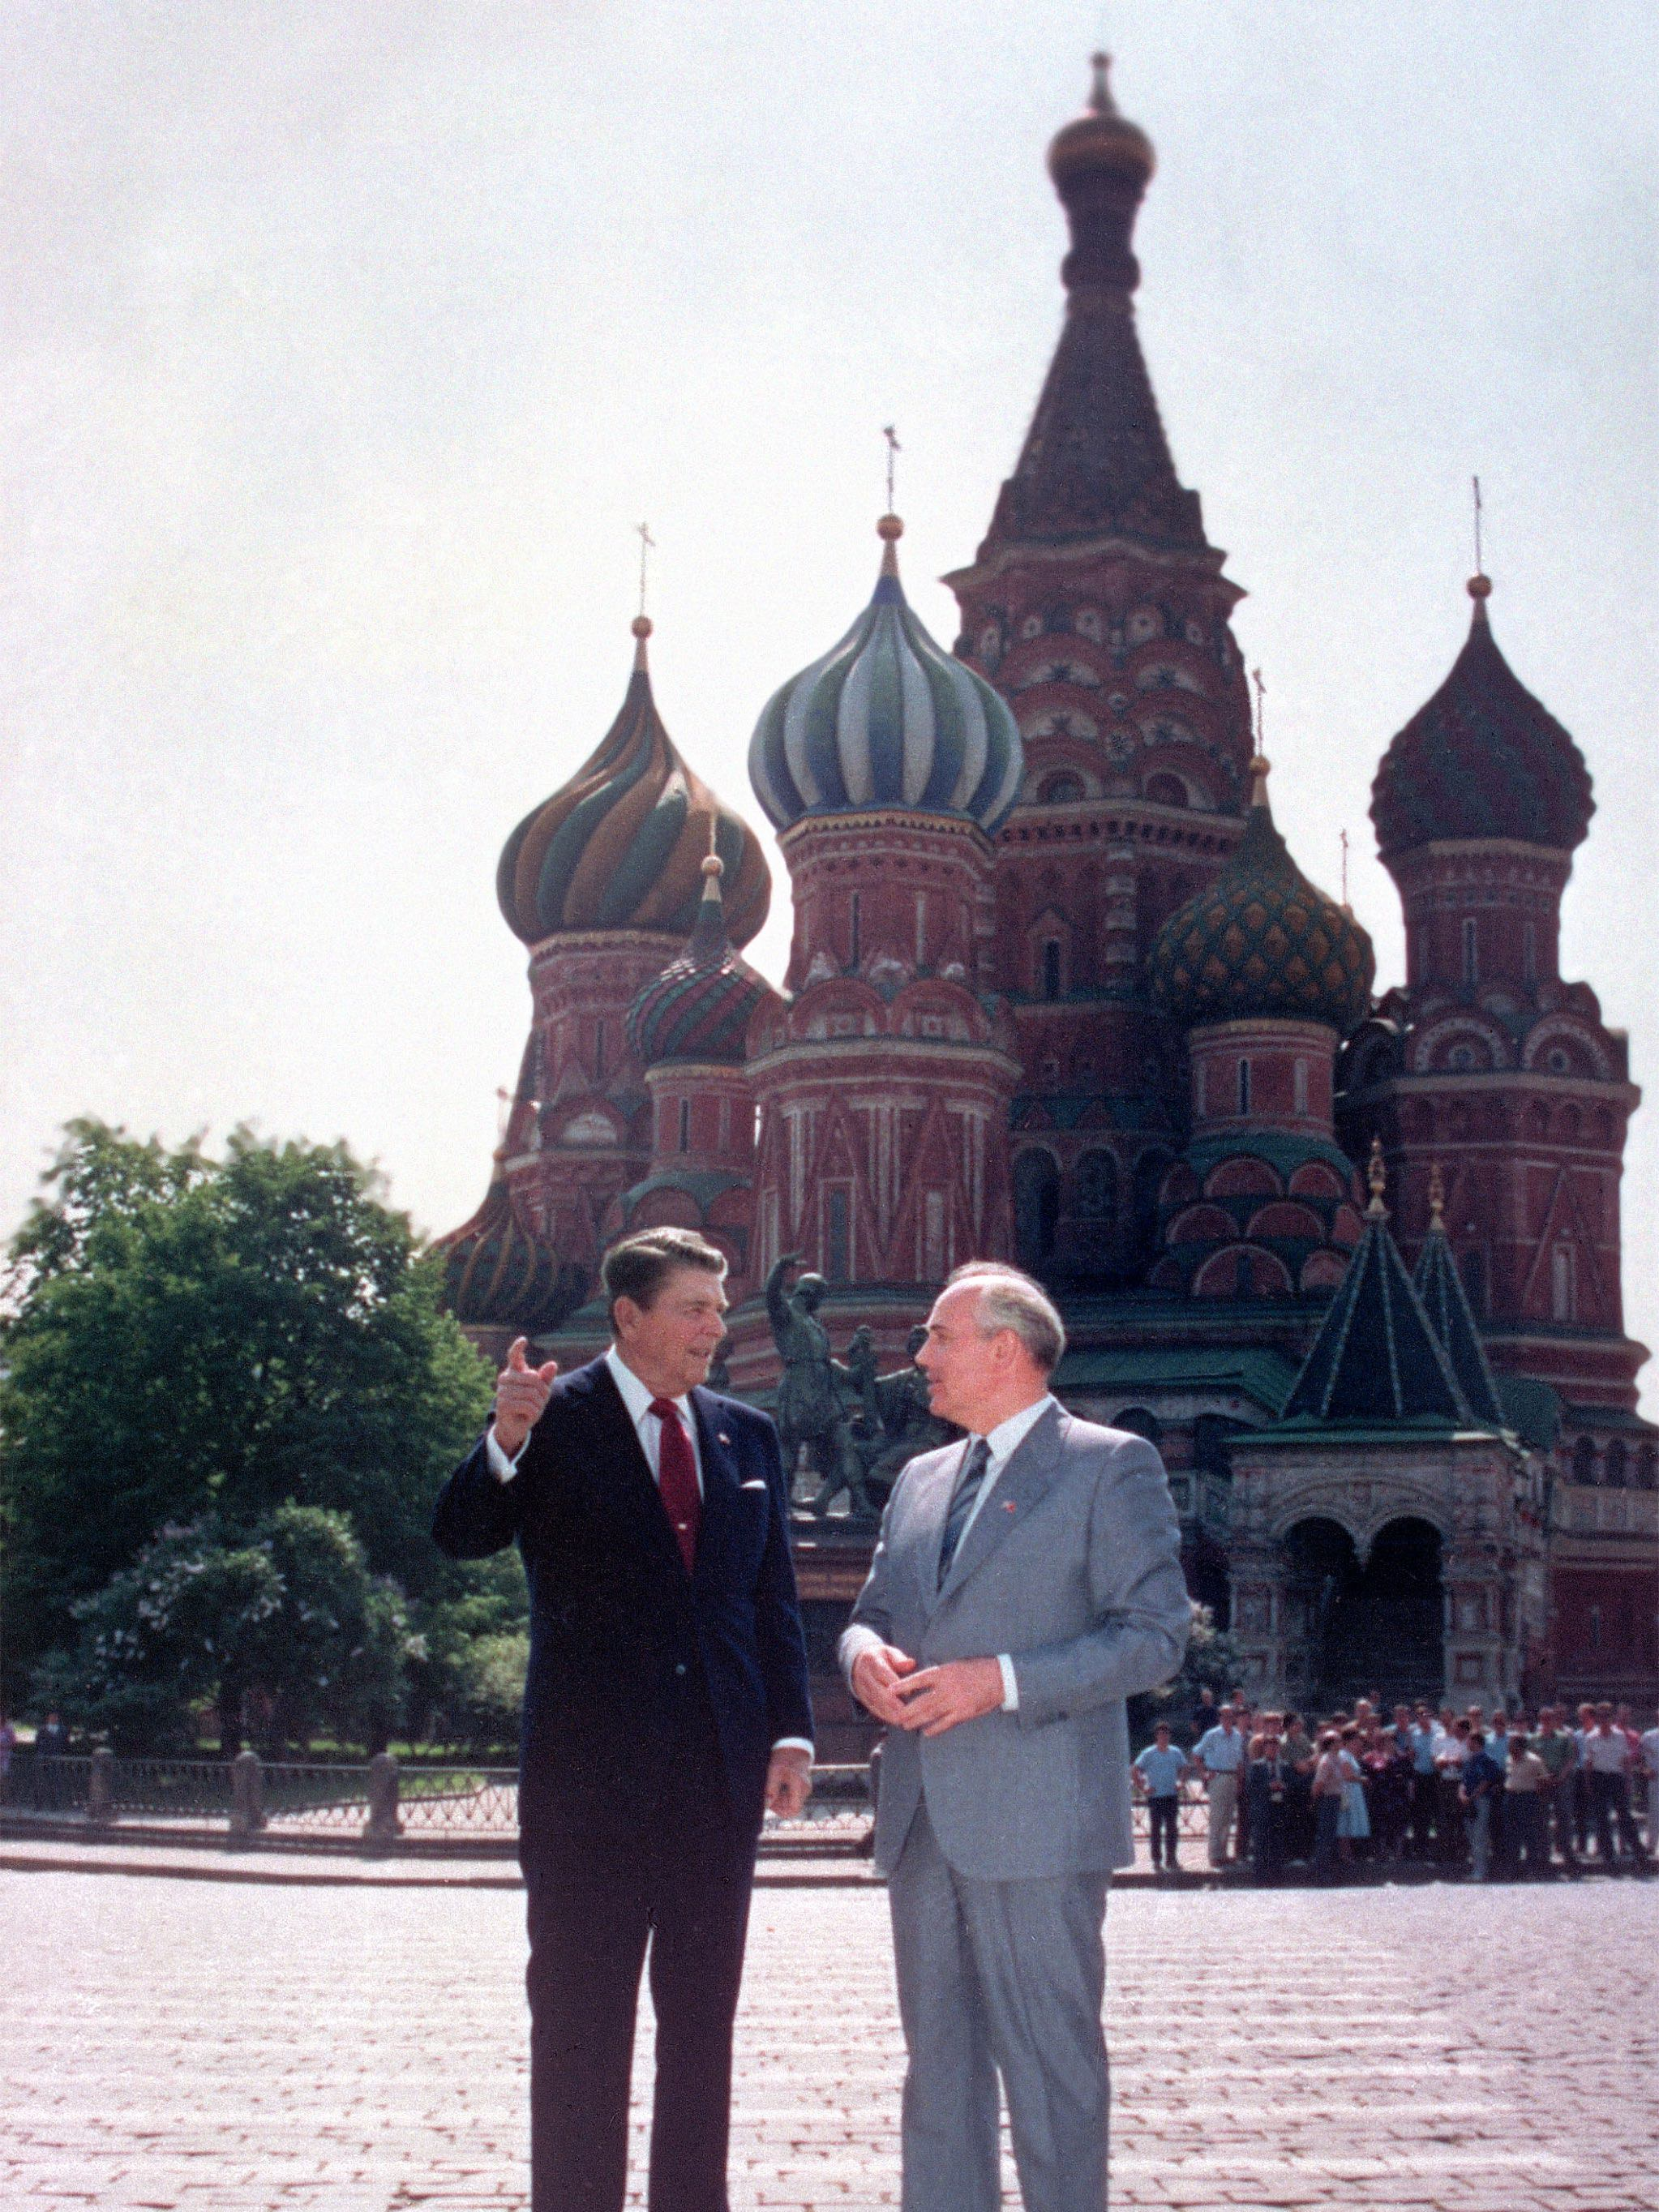 Ronald Reagan and Mikhail Gorbachev in Red Square, Moscow